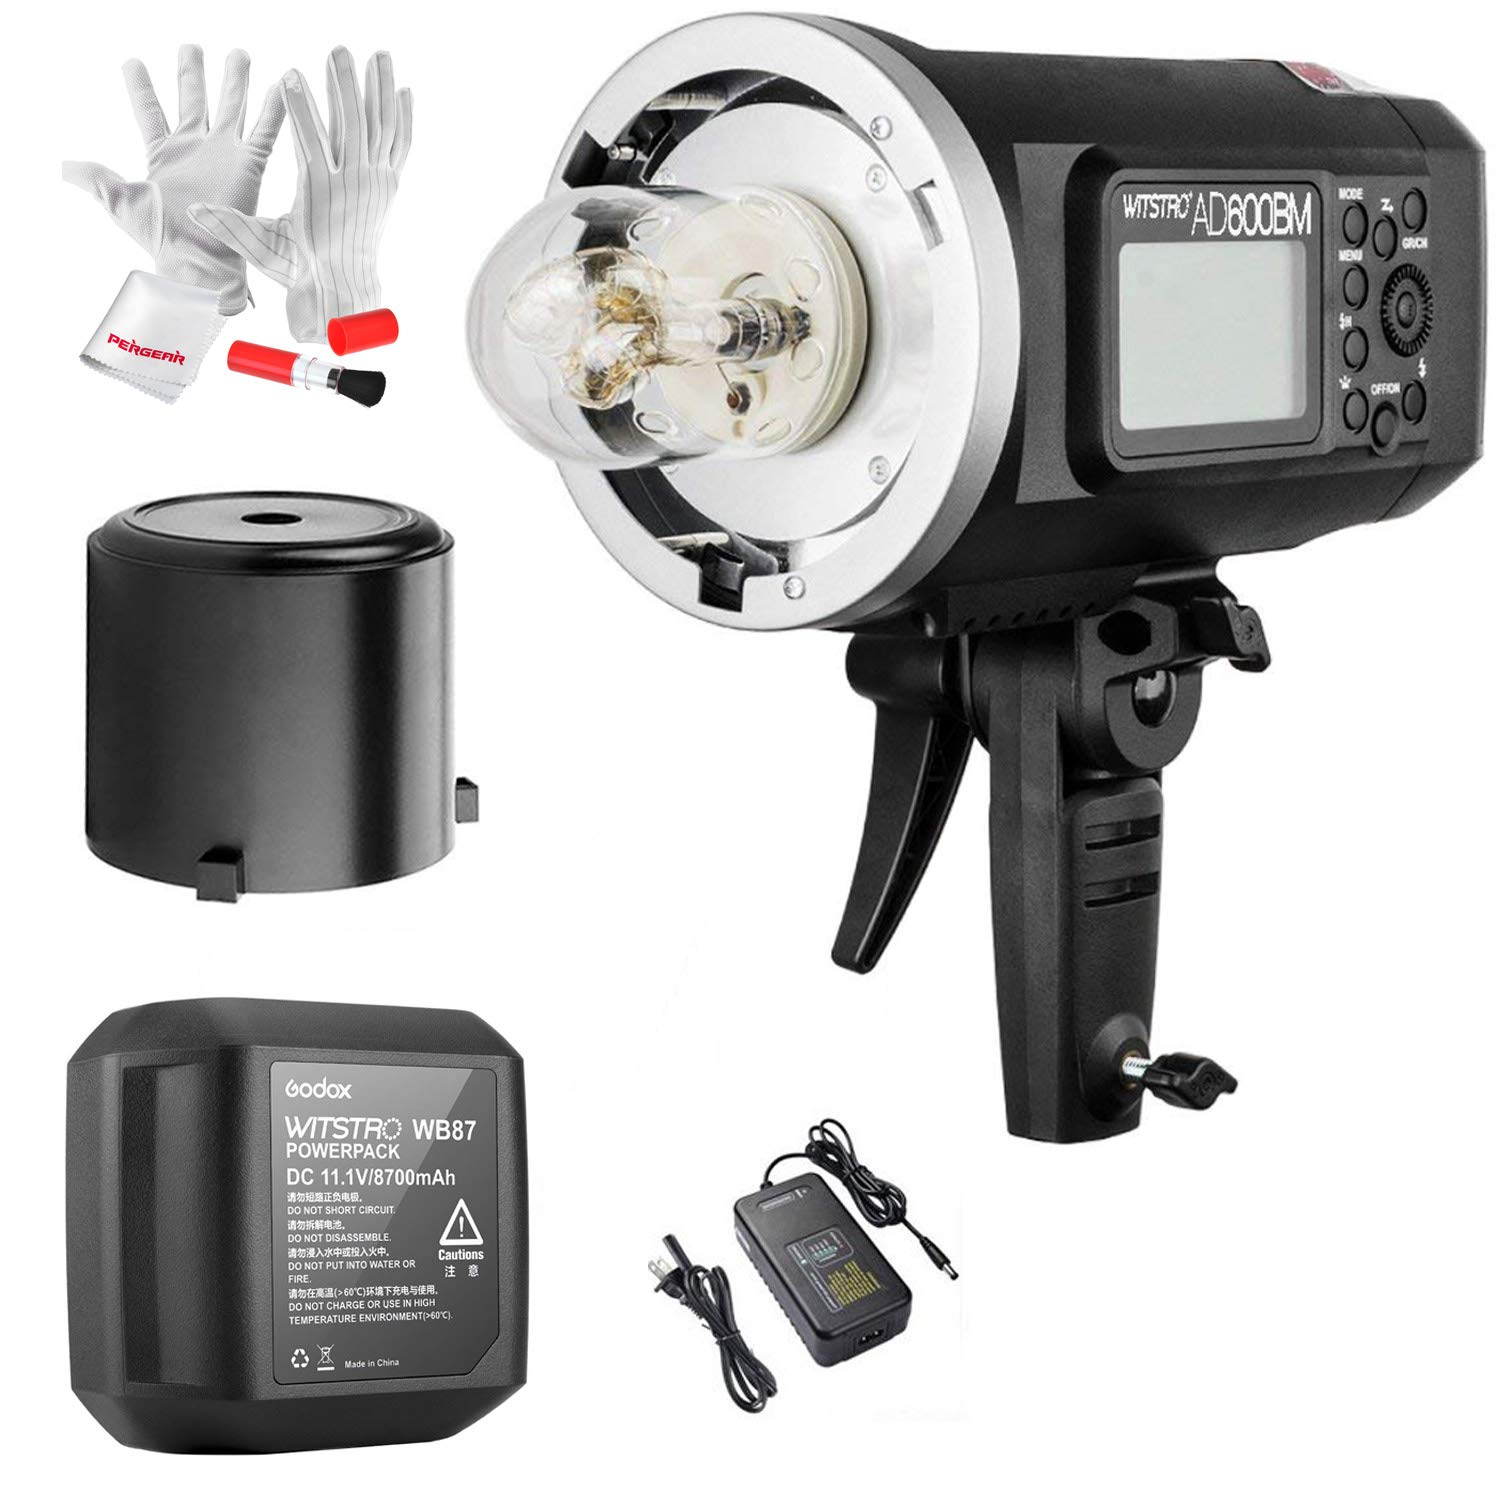 Godox AD600BM Bowens Mount 600Ws GN87 High Speed Sync Outdoor Flash Strobe Light with 2.4G Wireless X System, 8700mAh Battery to Provide 500 Full Power Flashes Recycle in 0.01-2.5 Second by Godox